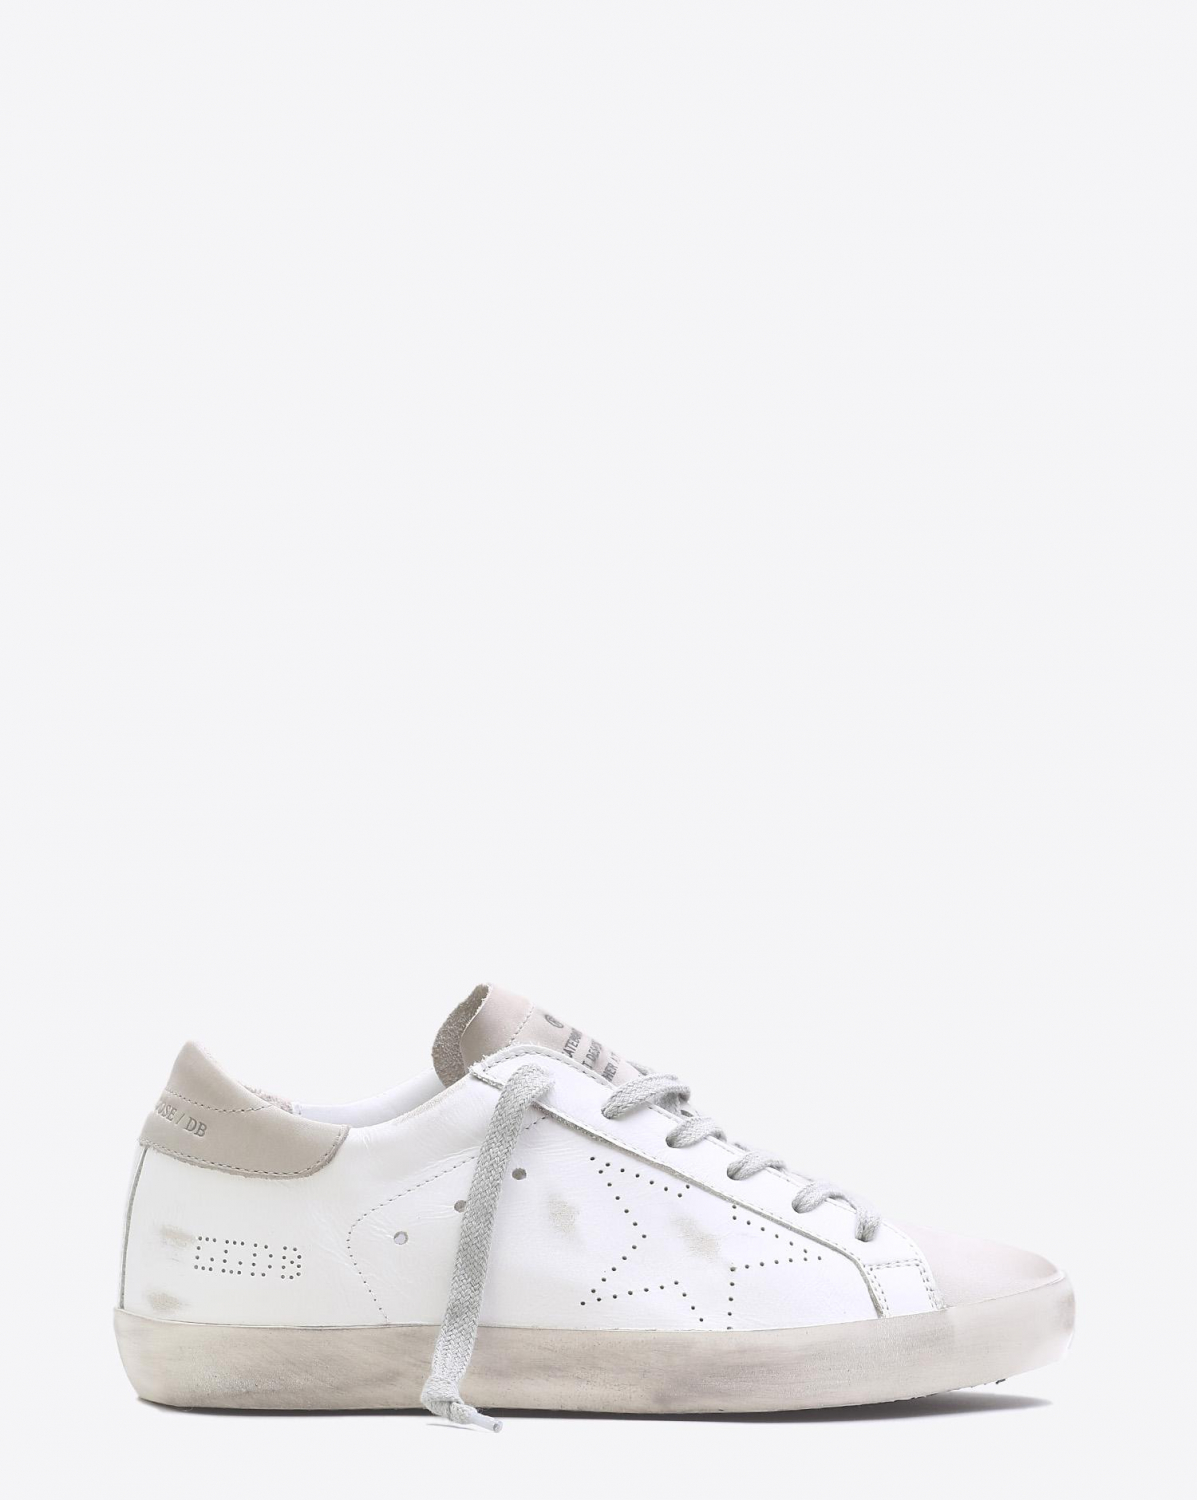 Golden Goose Woman Permanent Sneakers Superstar - White Skate